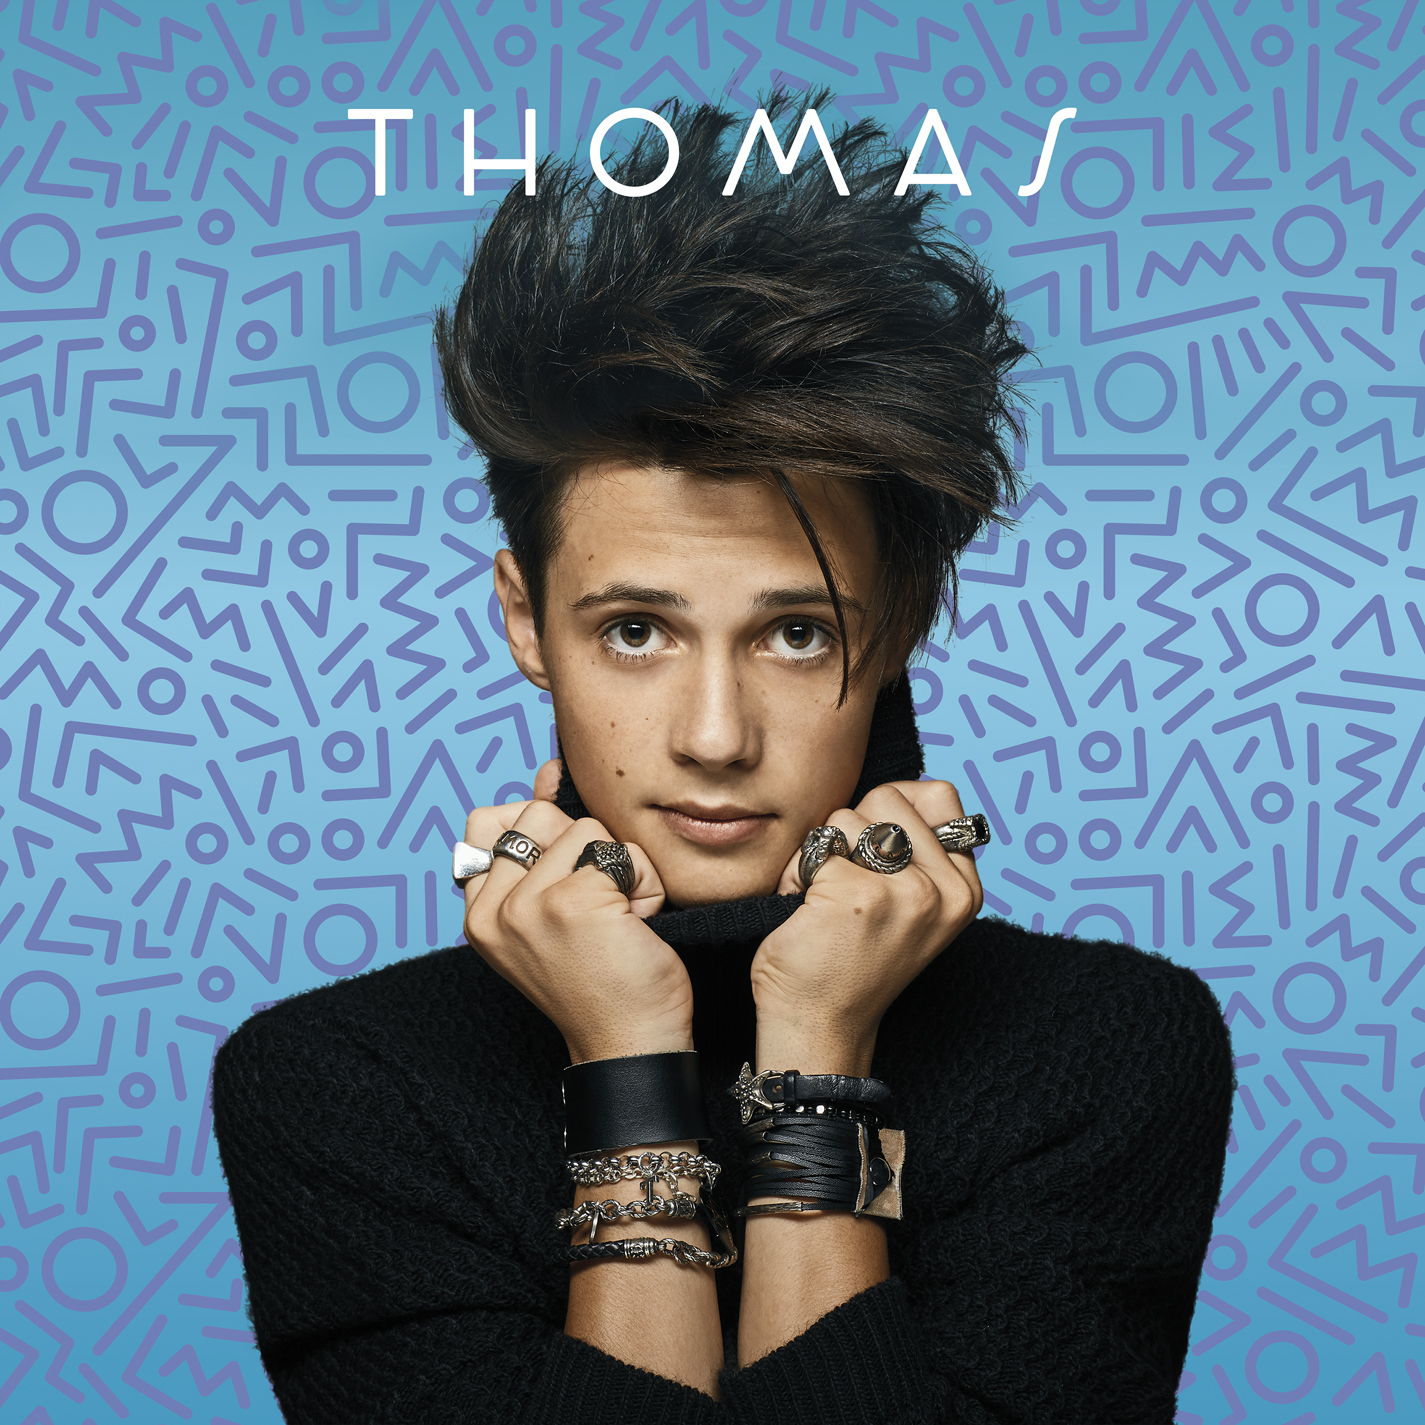 Thomas - Cover album